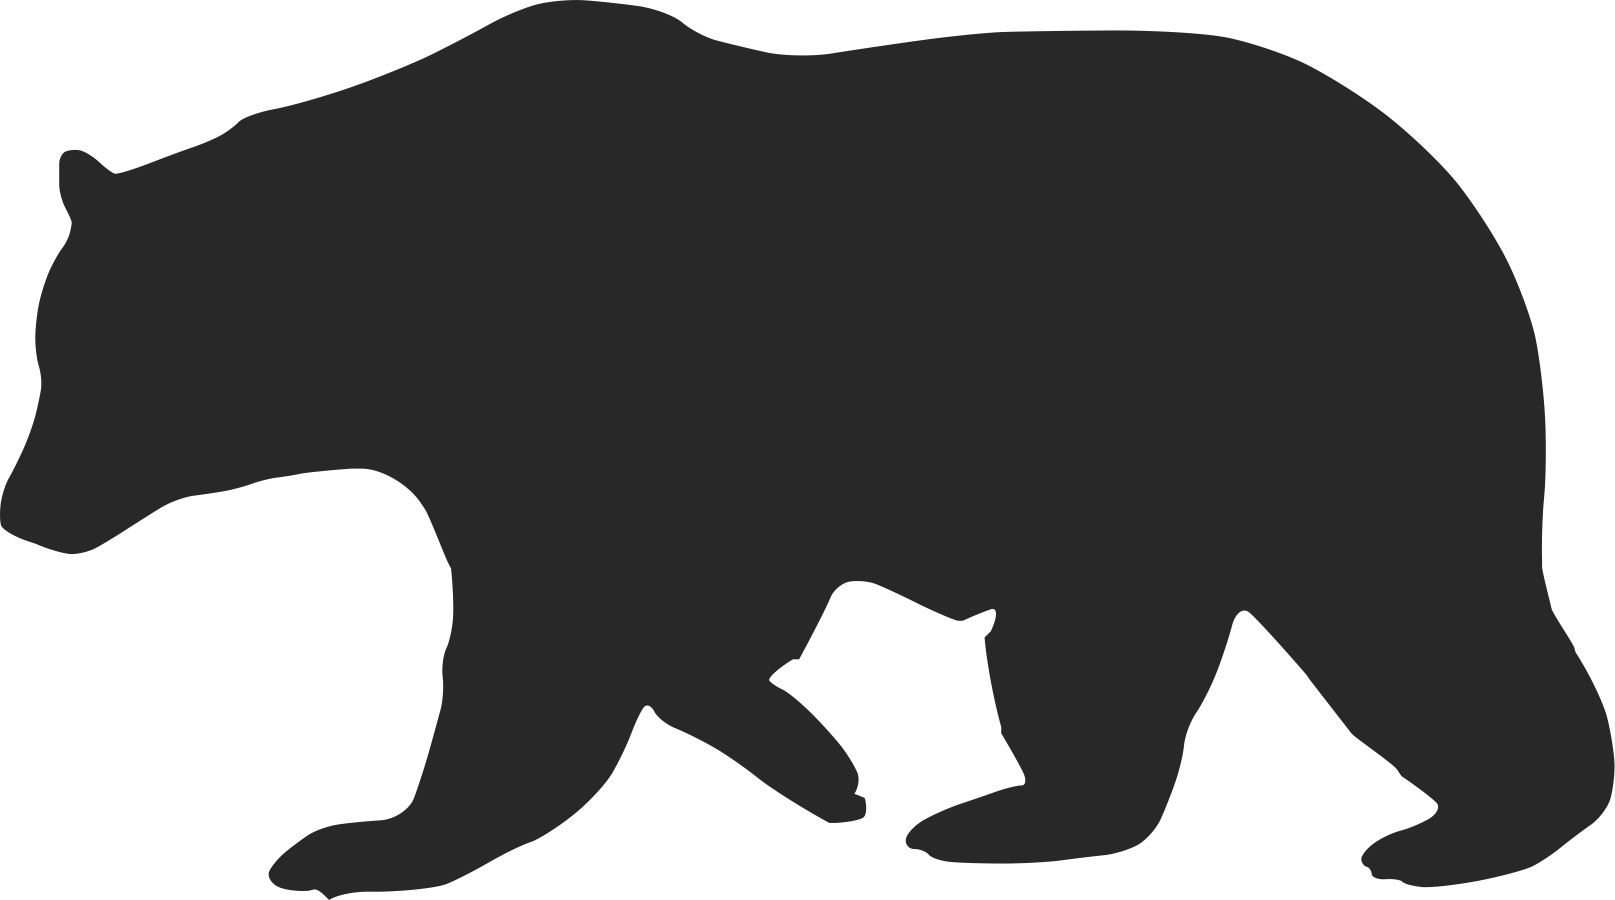 Grizzly Family clipart #8, Download drawings